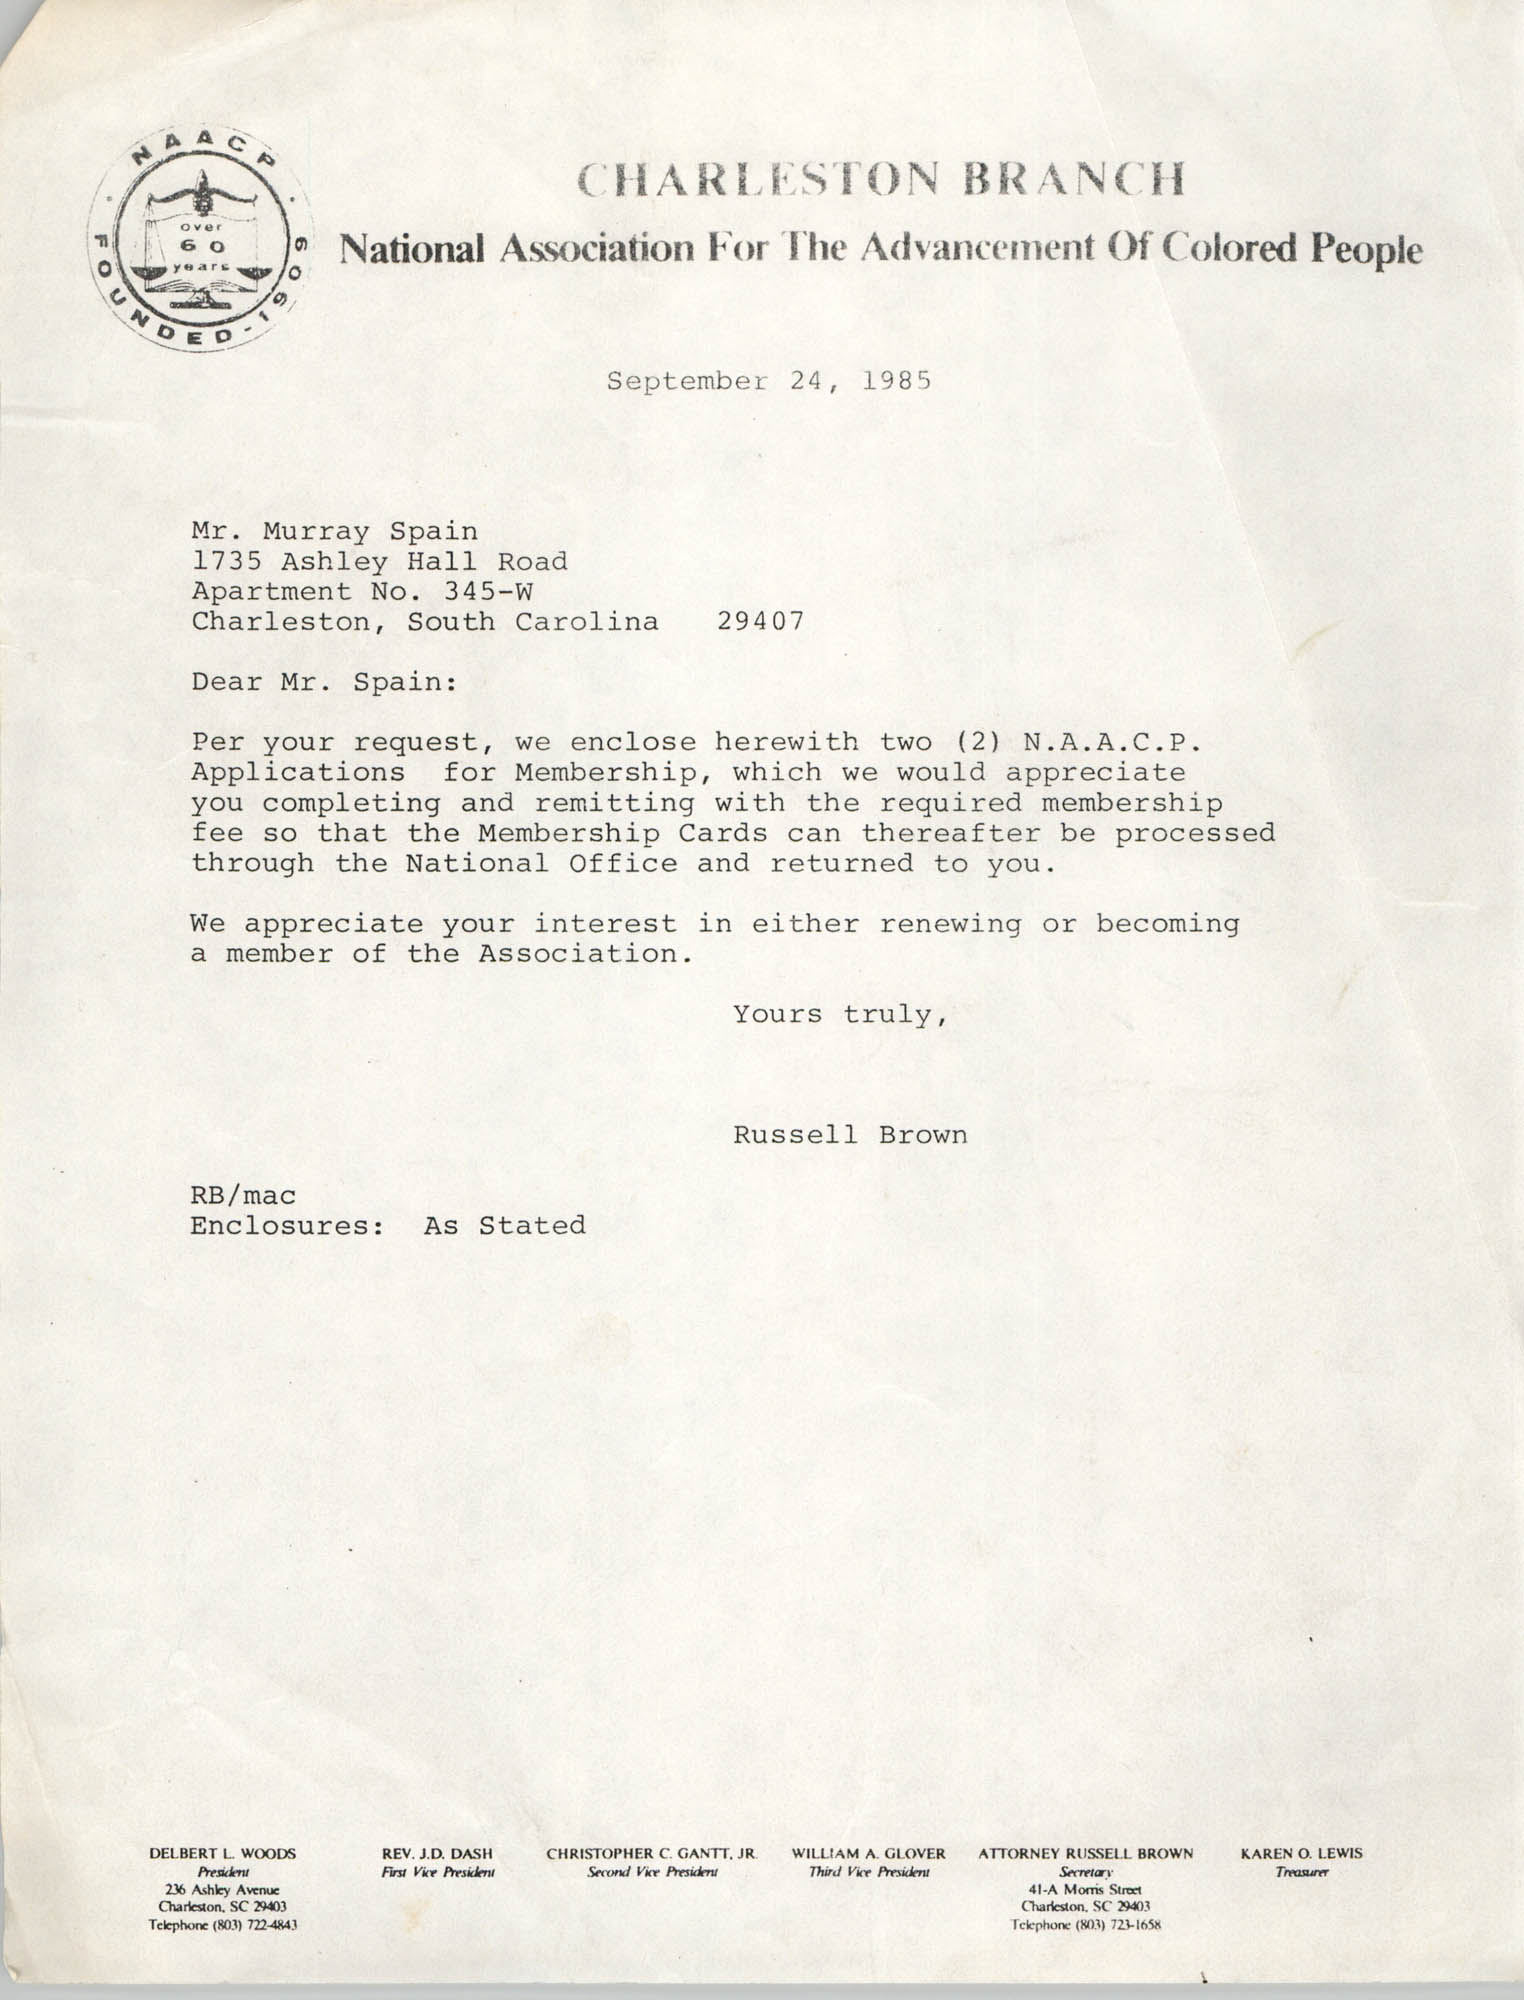 Letter from Russell Brown to Murray Spain, September 24, 1985